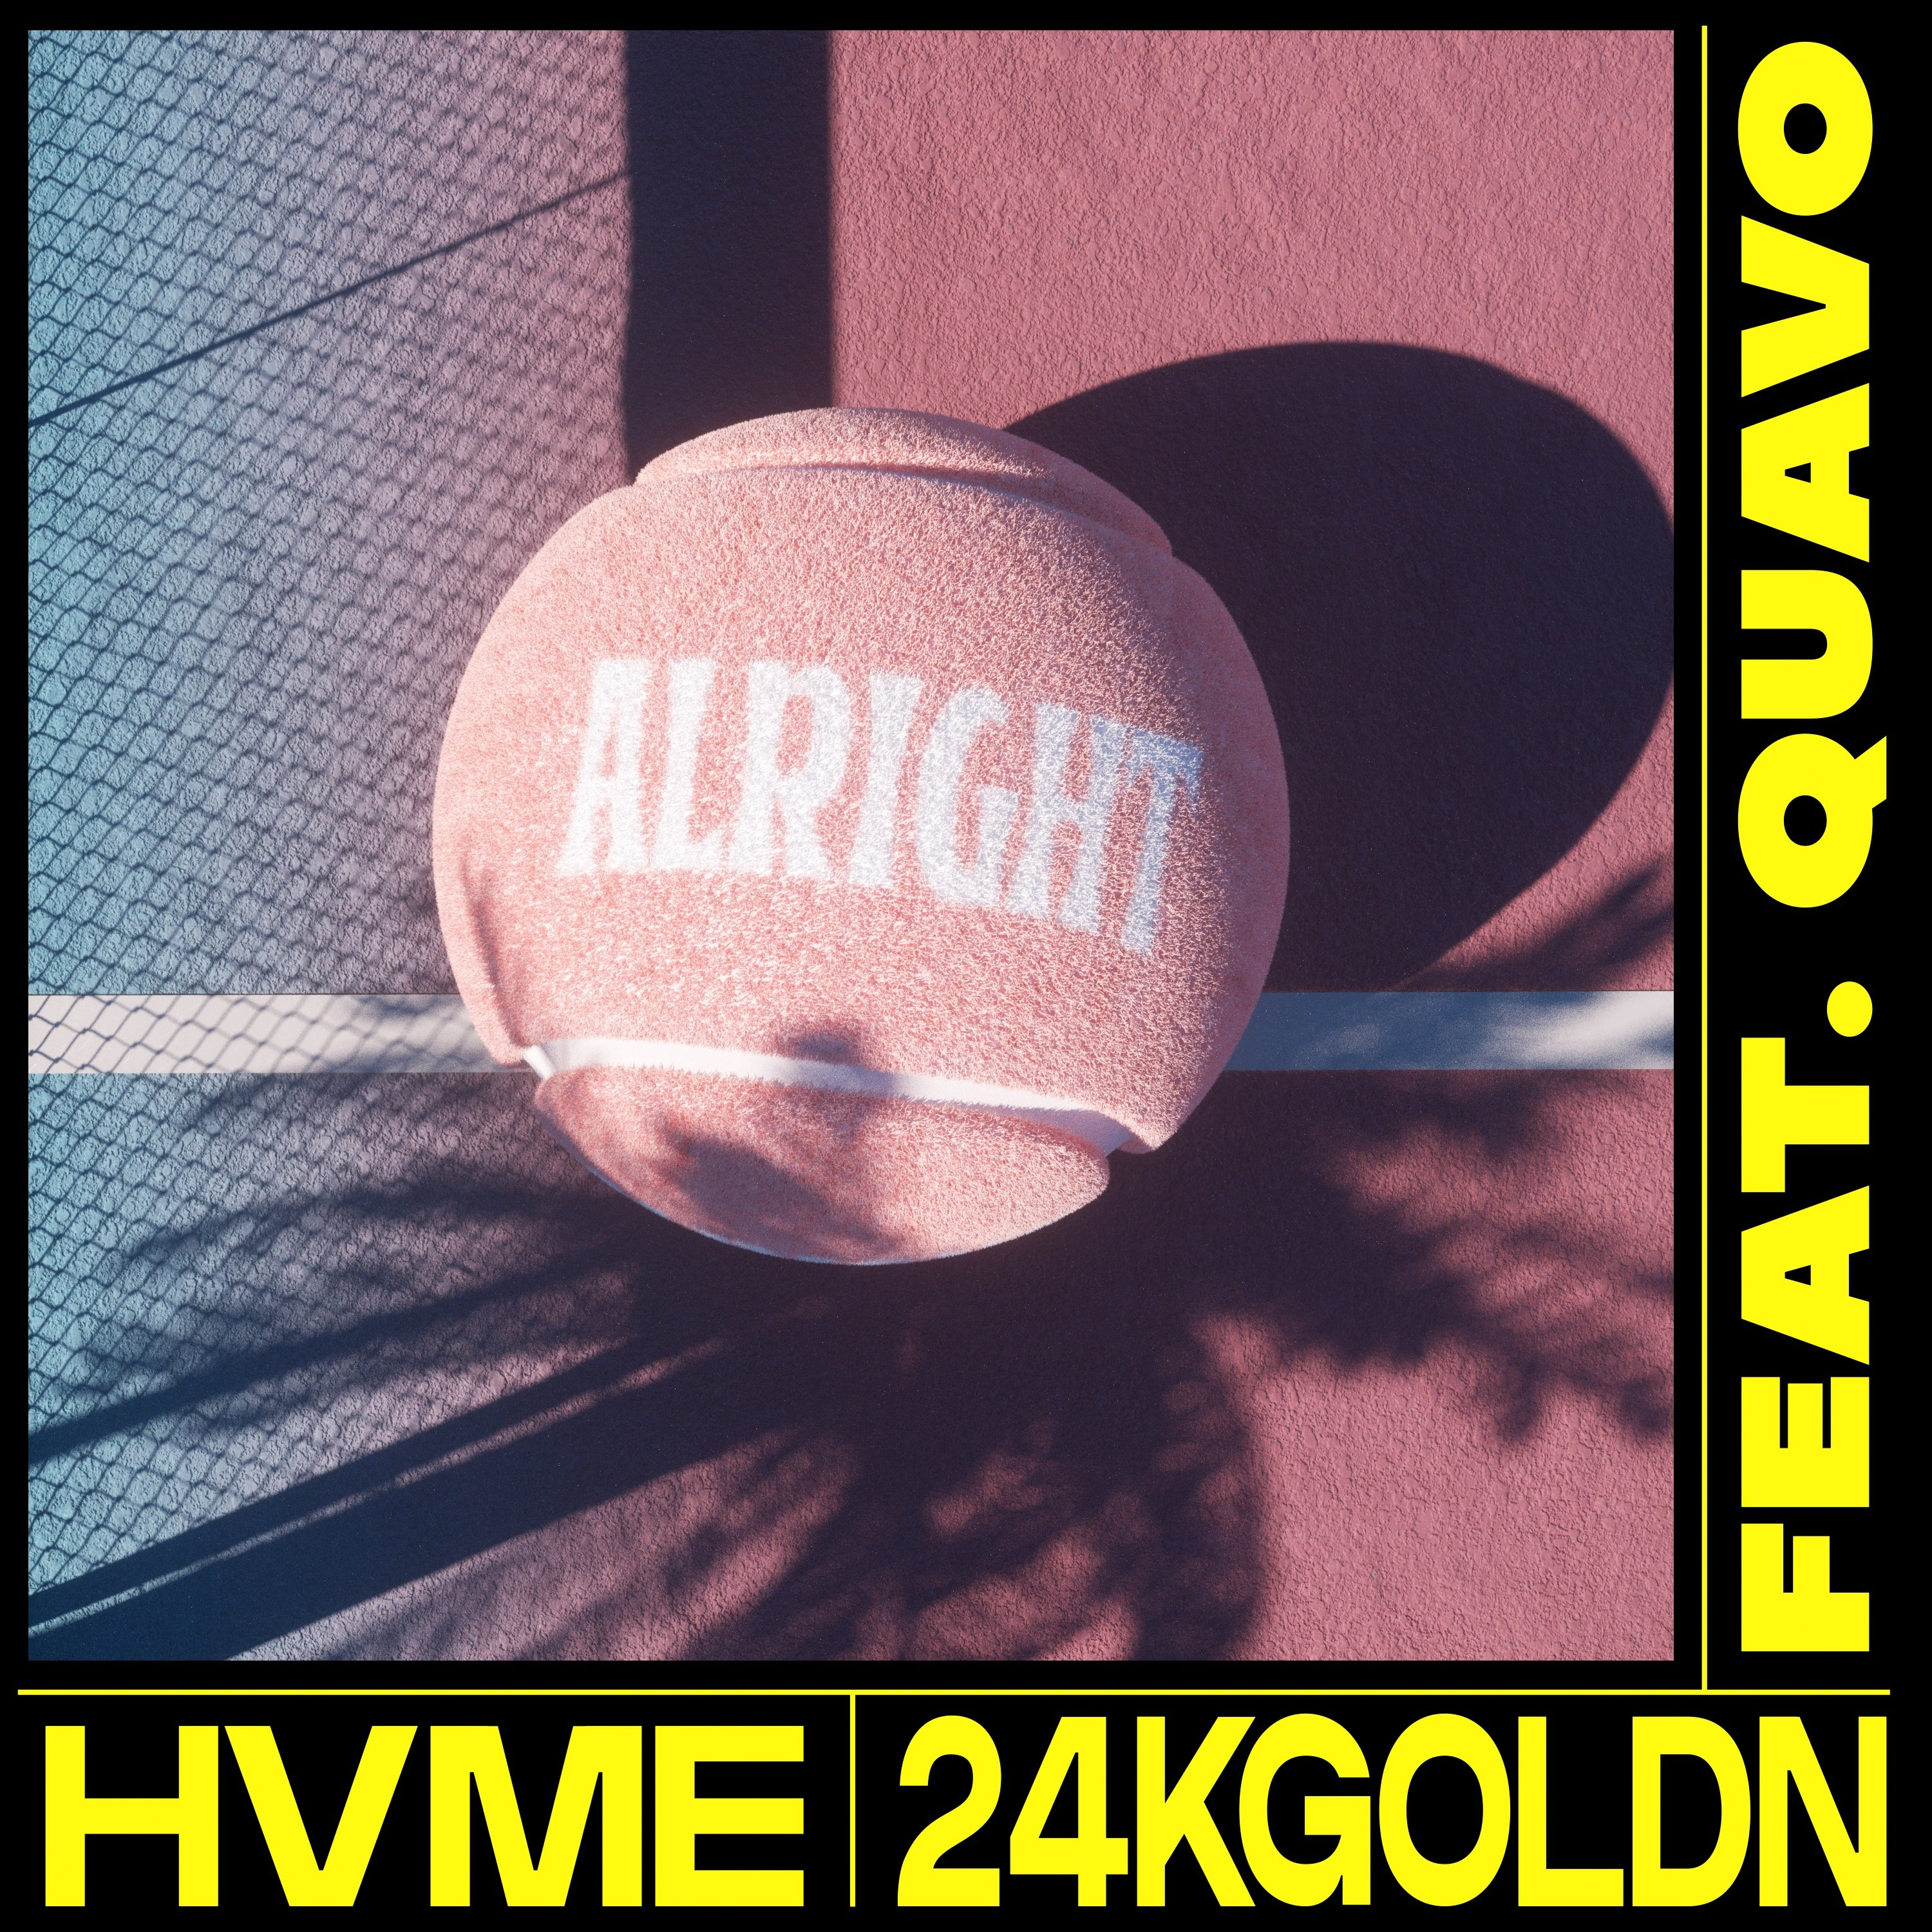 """HVME and 24kGoldn link up for """"Alright"""" featuring Quavo"""